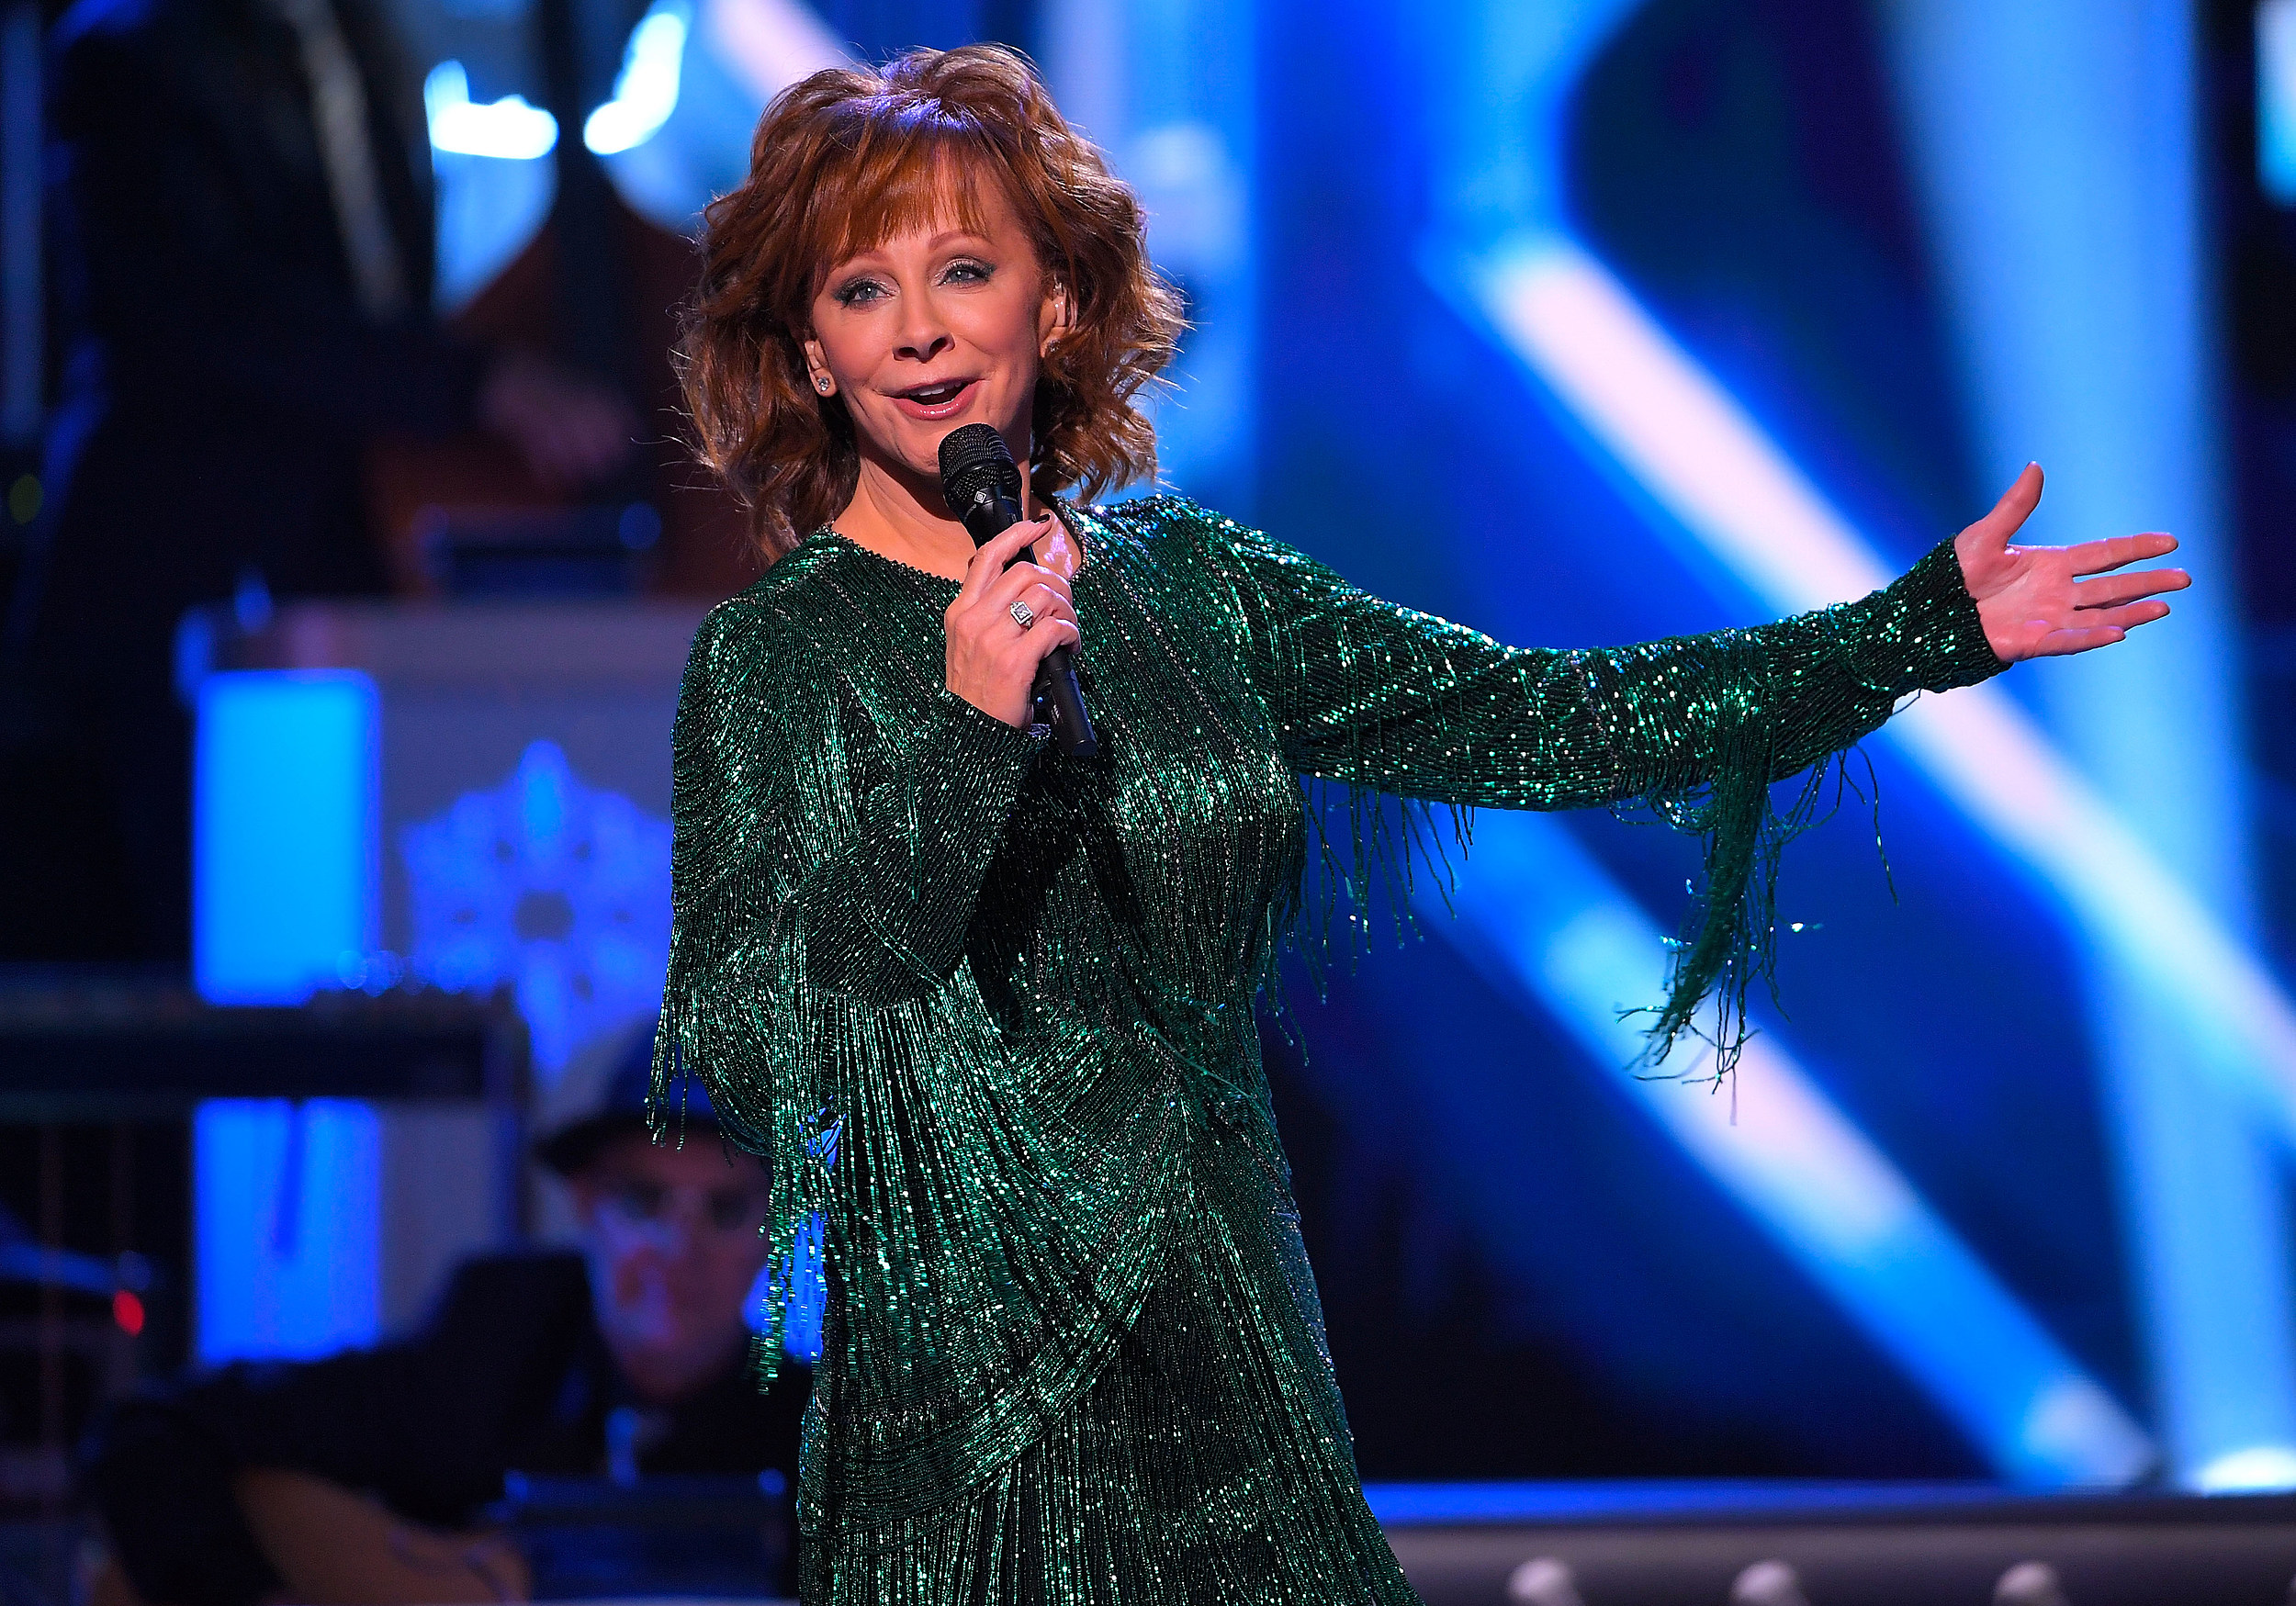 Cma Christmas Show 2019 Reba McEntire Returning as 'CMA Country Christmas' Host in 2018